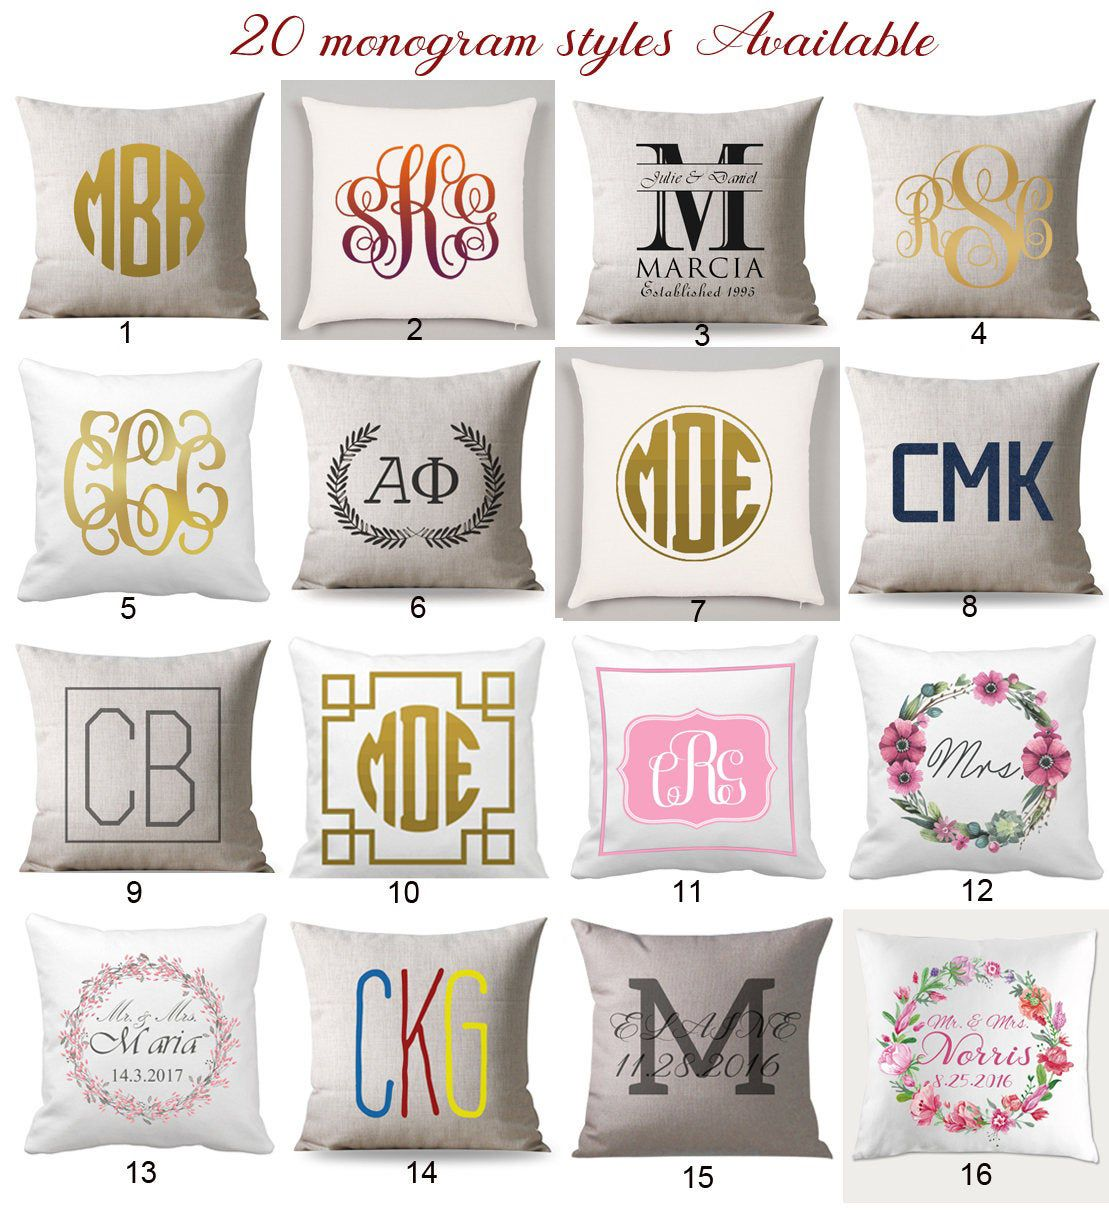 Monogram Pillow Cover Custom Monogrammed Pillow Case Monogram Cushion Cover Monogram Throw Pillow Personalize Wedding Gift For Couple In 2020 Monogram Pillows Monogram Throw Pillow Monogram Pillowcase